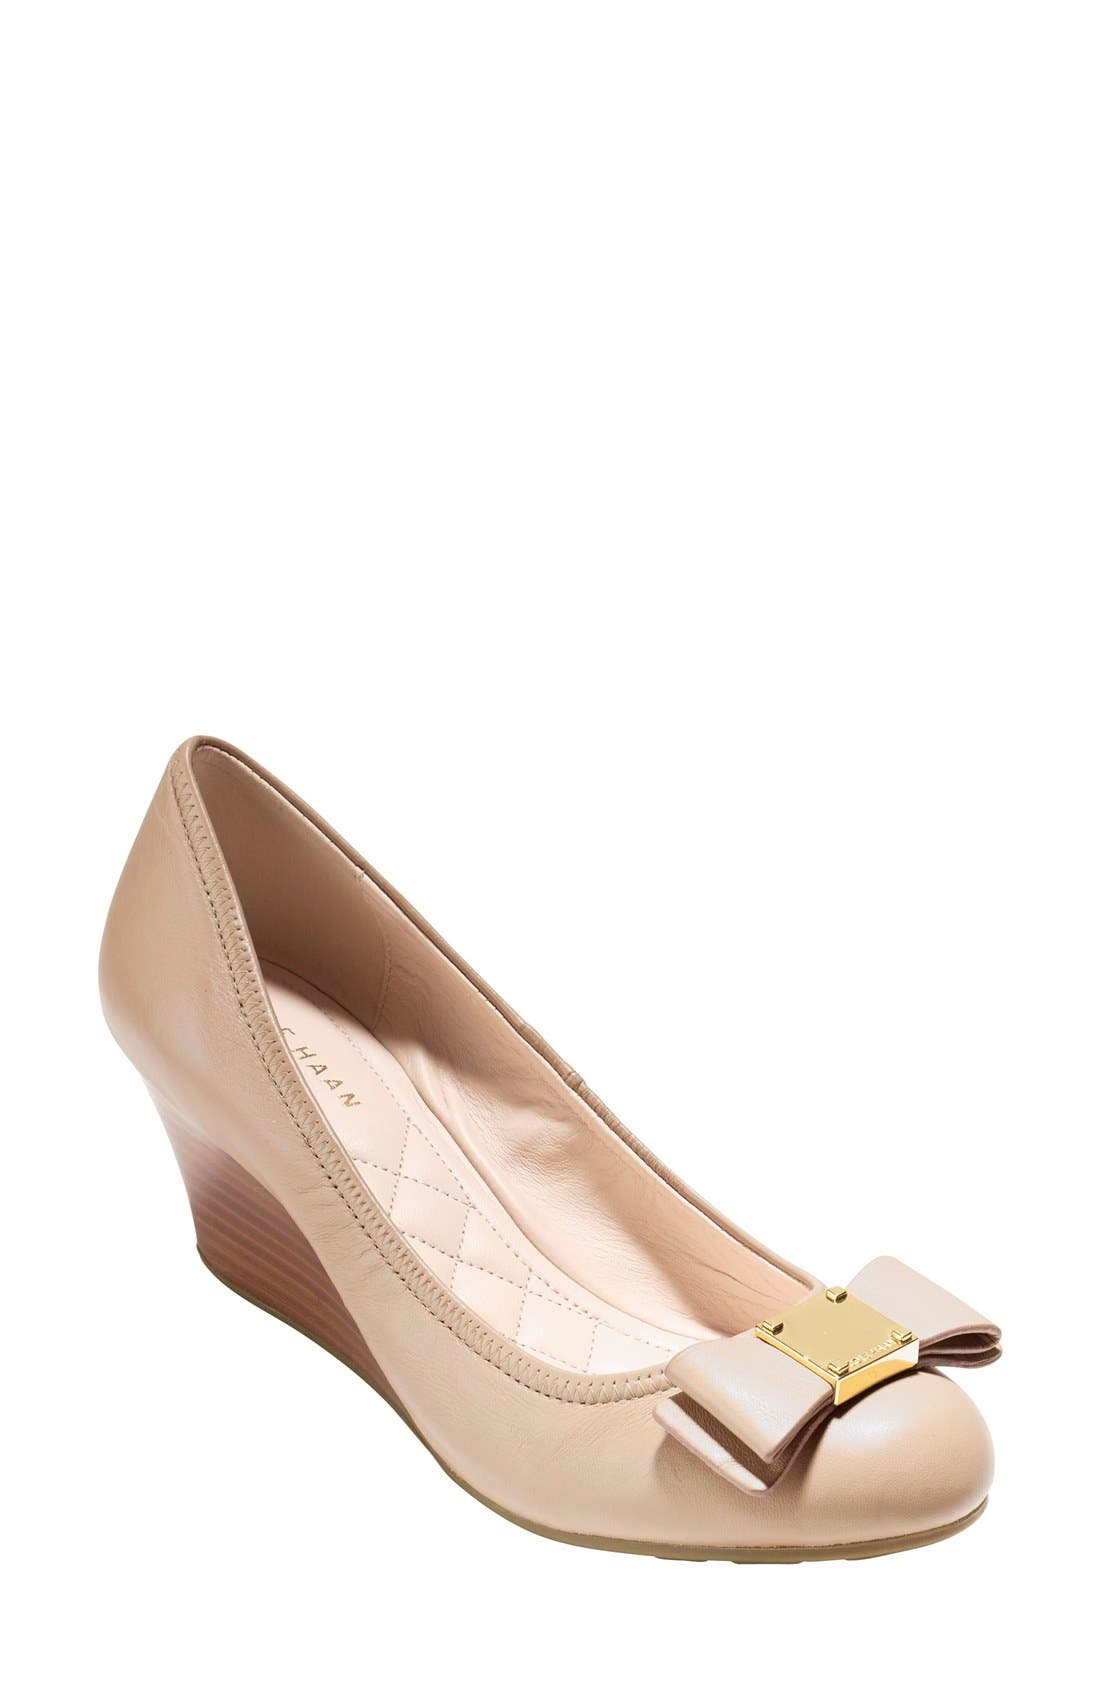 'Tali Grand' Bow Wedge Pump,                         Main,                         color, 250